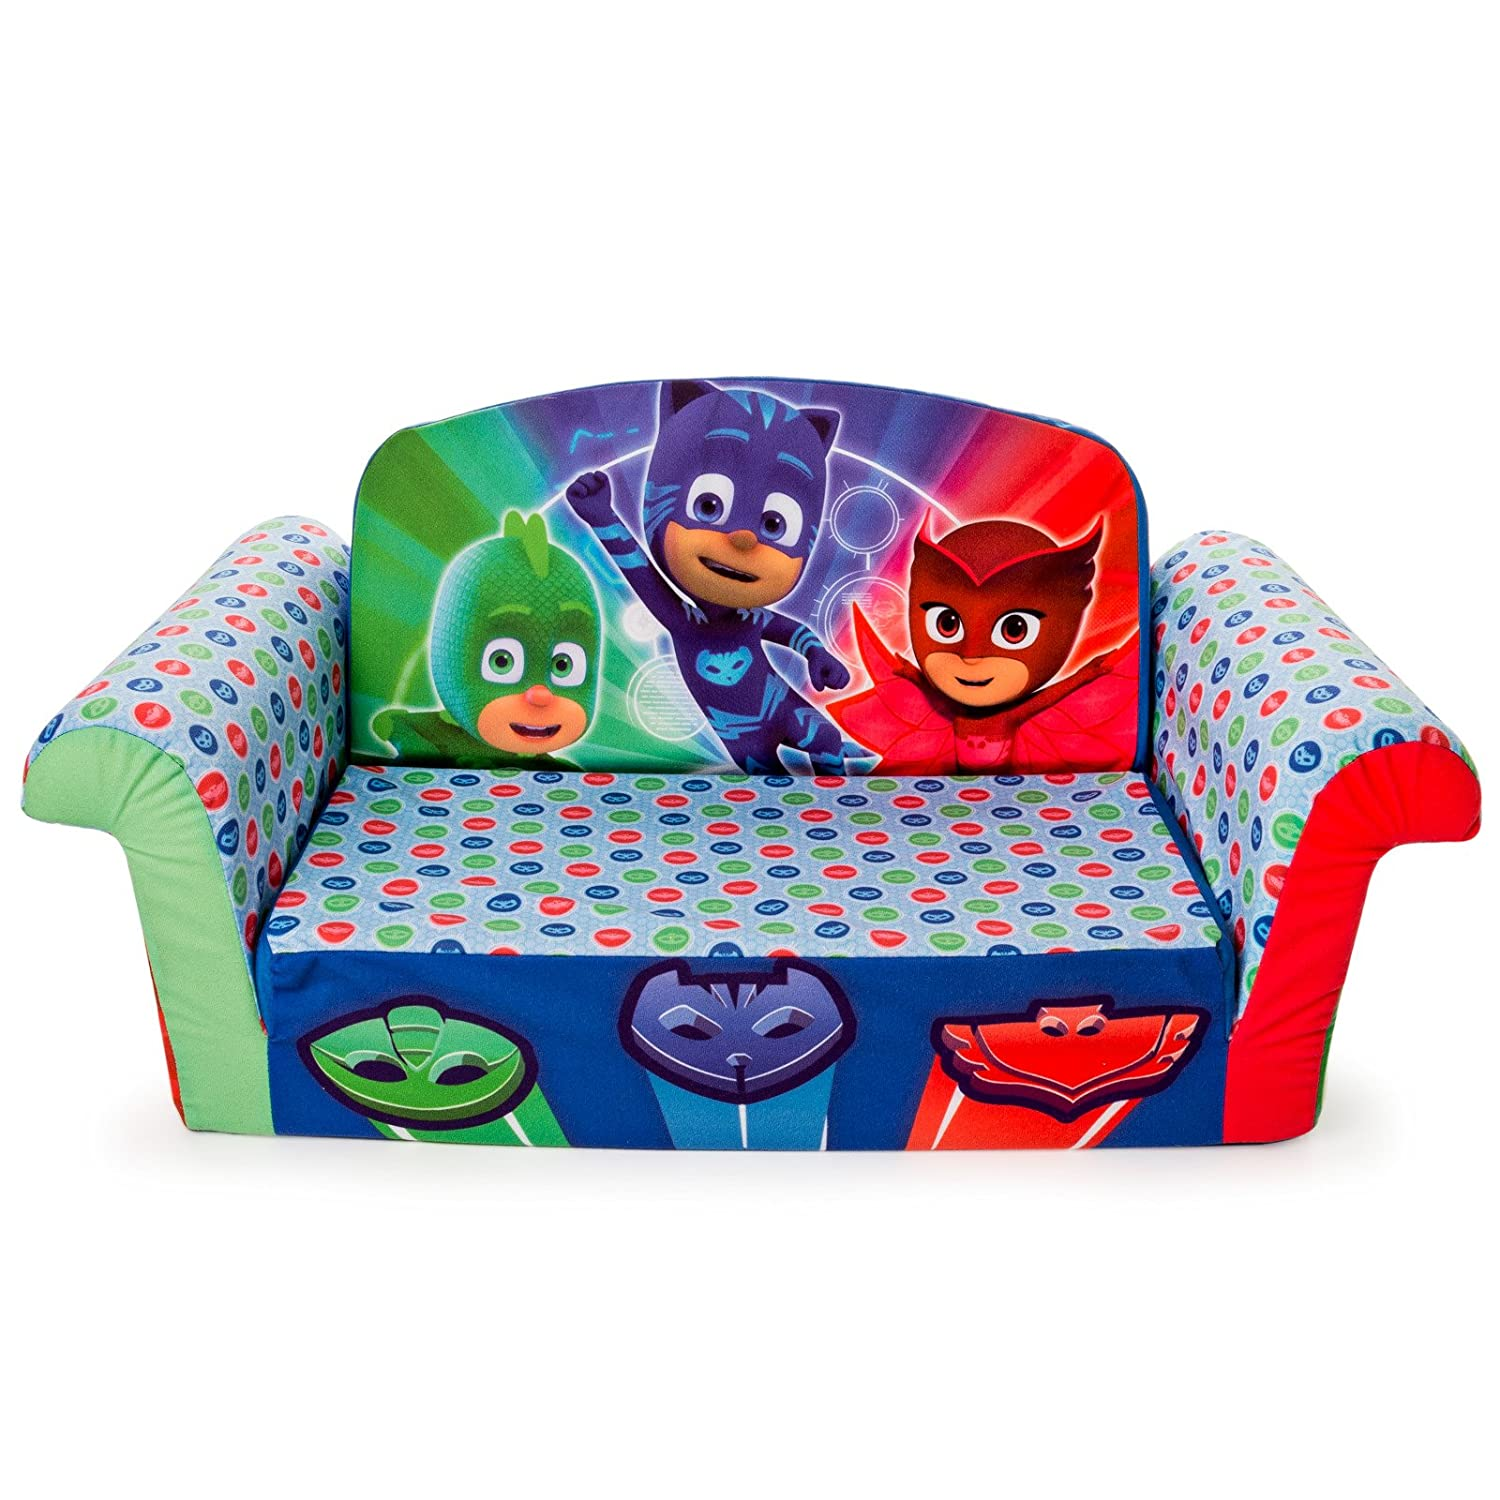 Marshmallow Furniture - Children's 2 in 1 Flip Open Foam Sofa, PJ Masks Flip Open Sofa